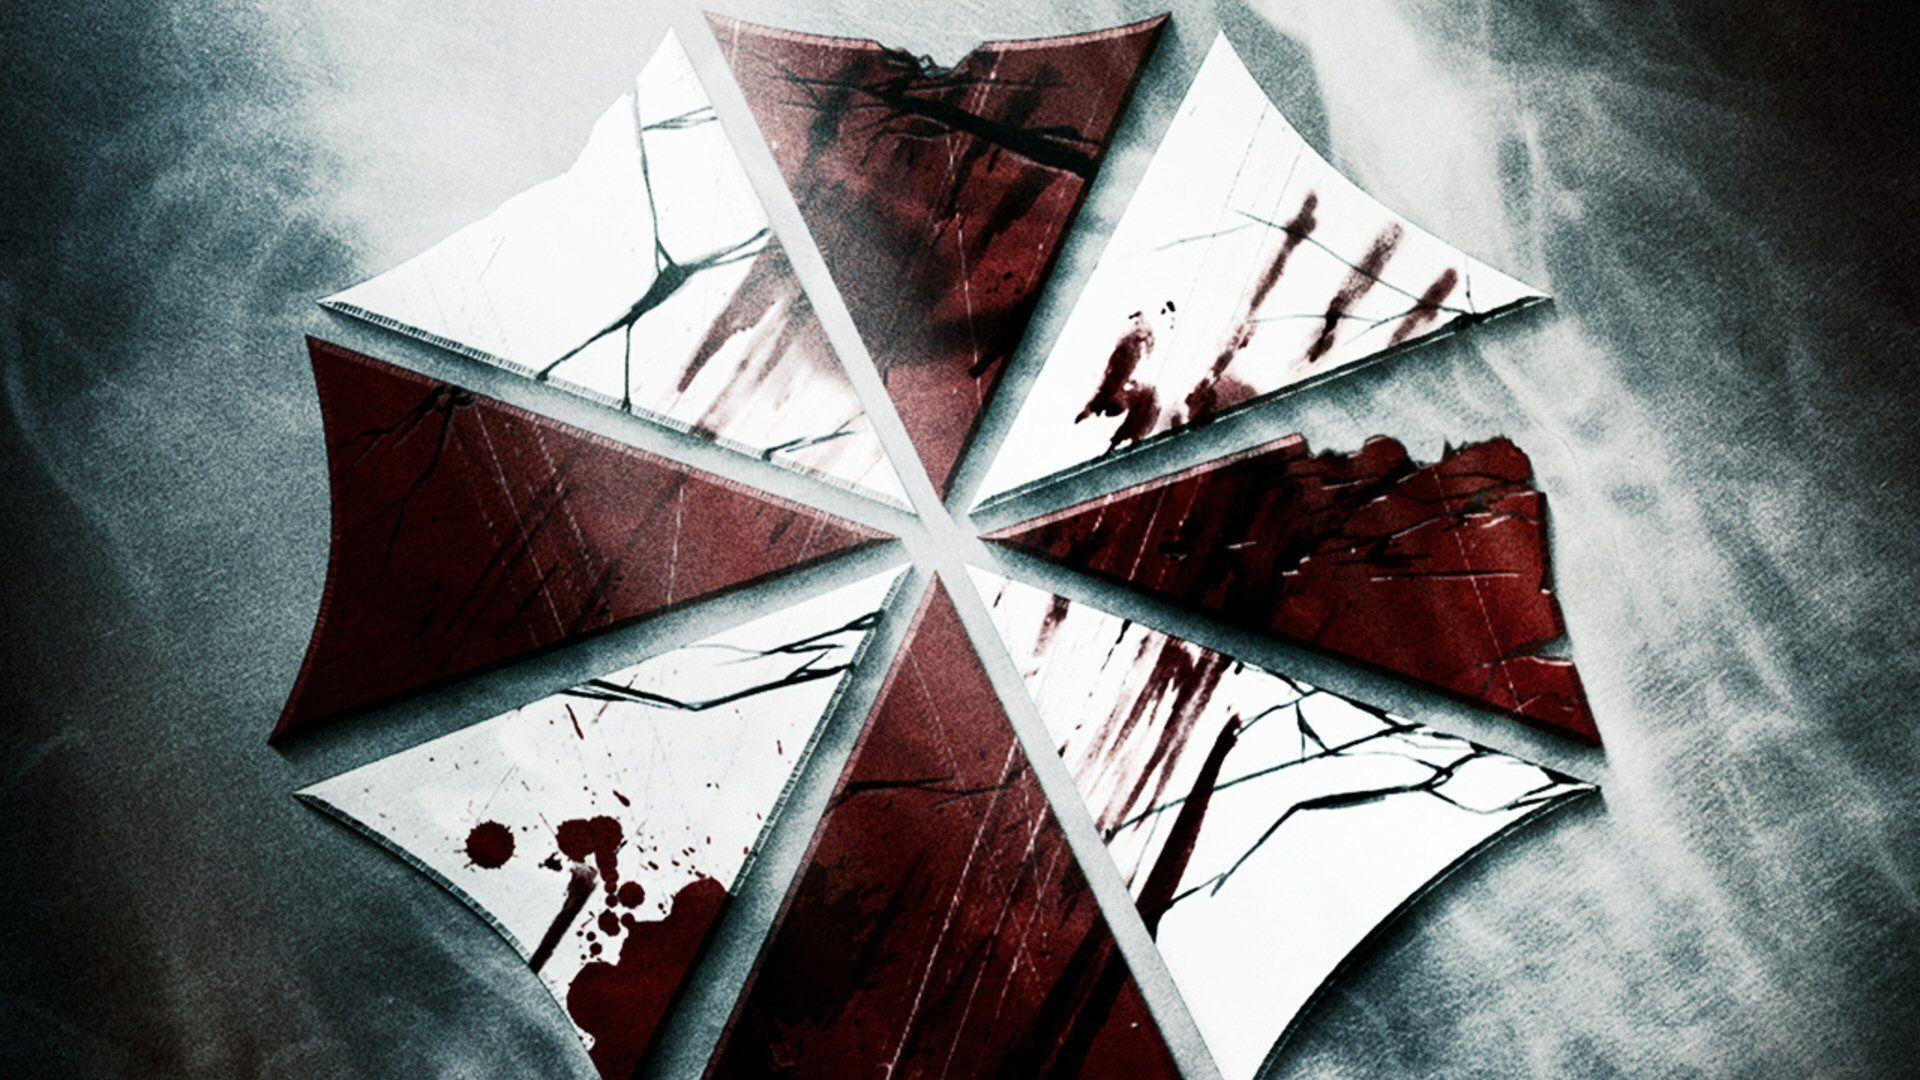 Resident Evil Wallpapers HD - Wallpaper Cave